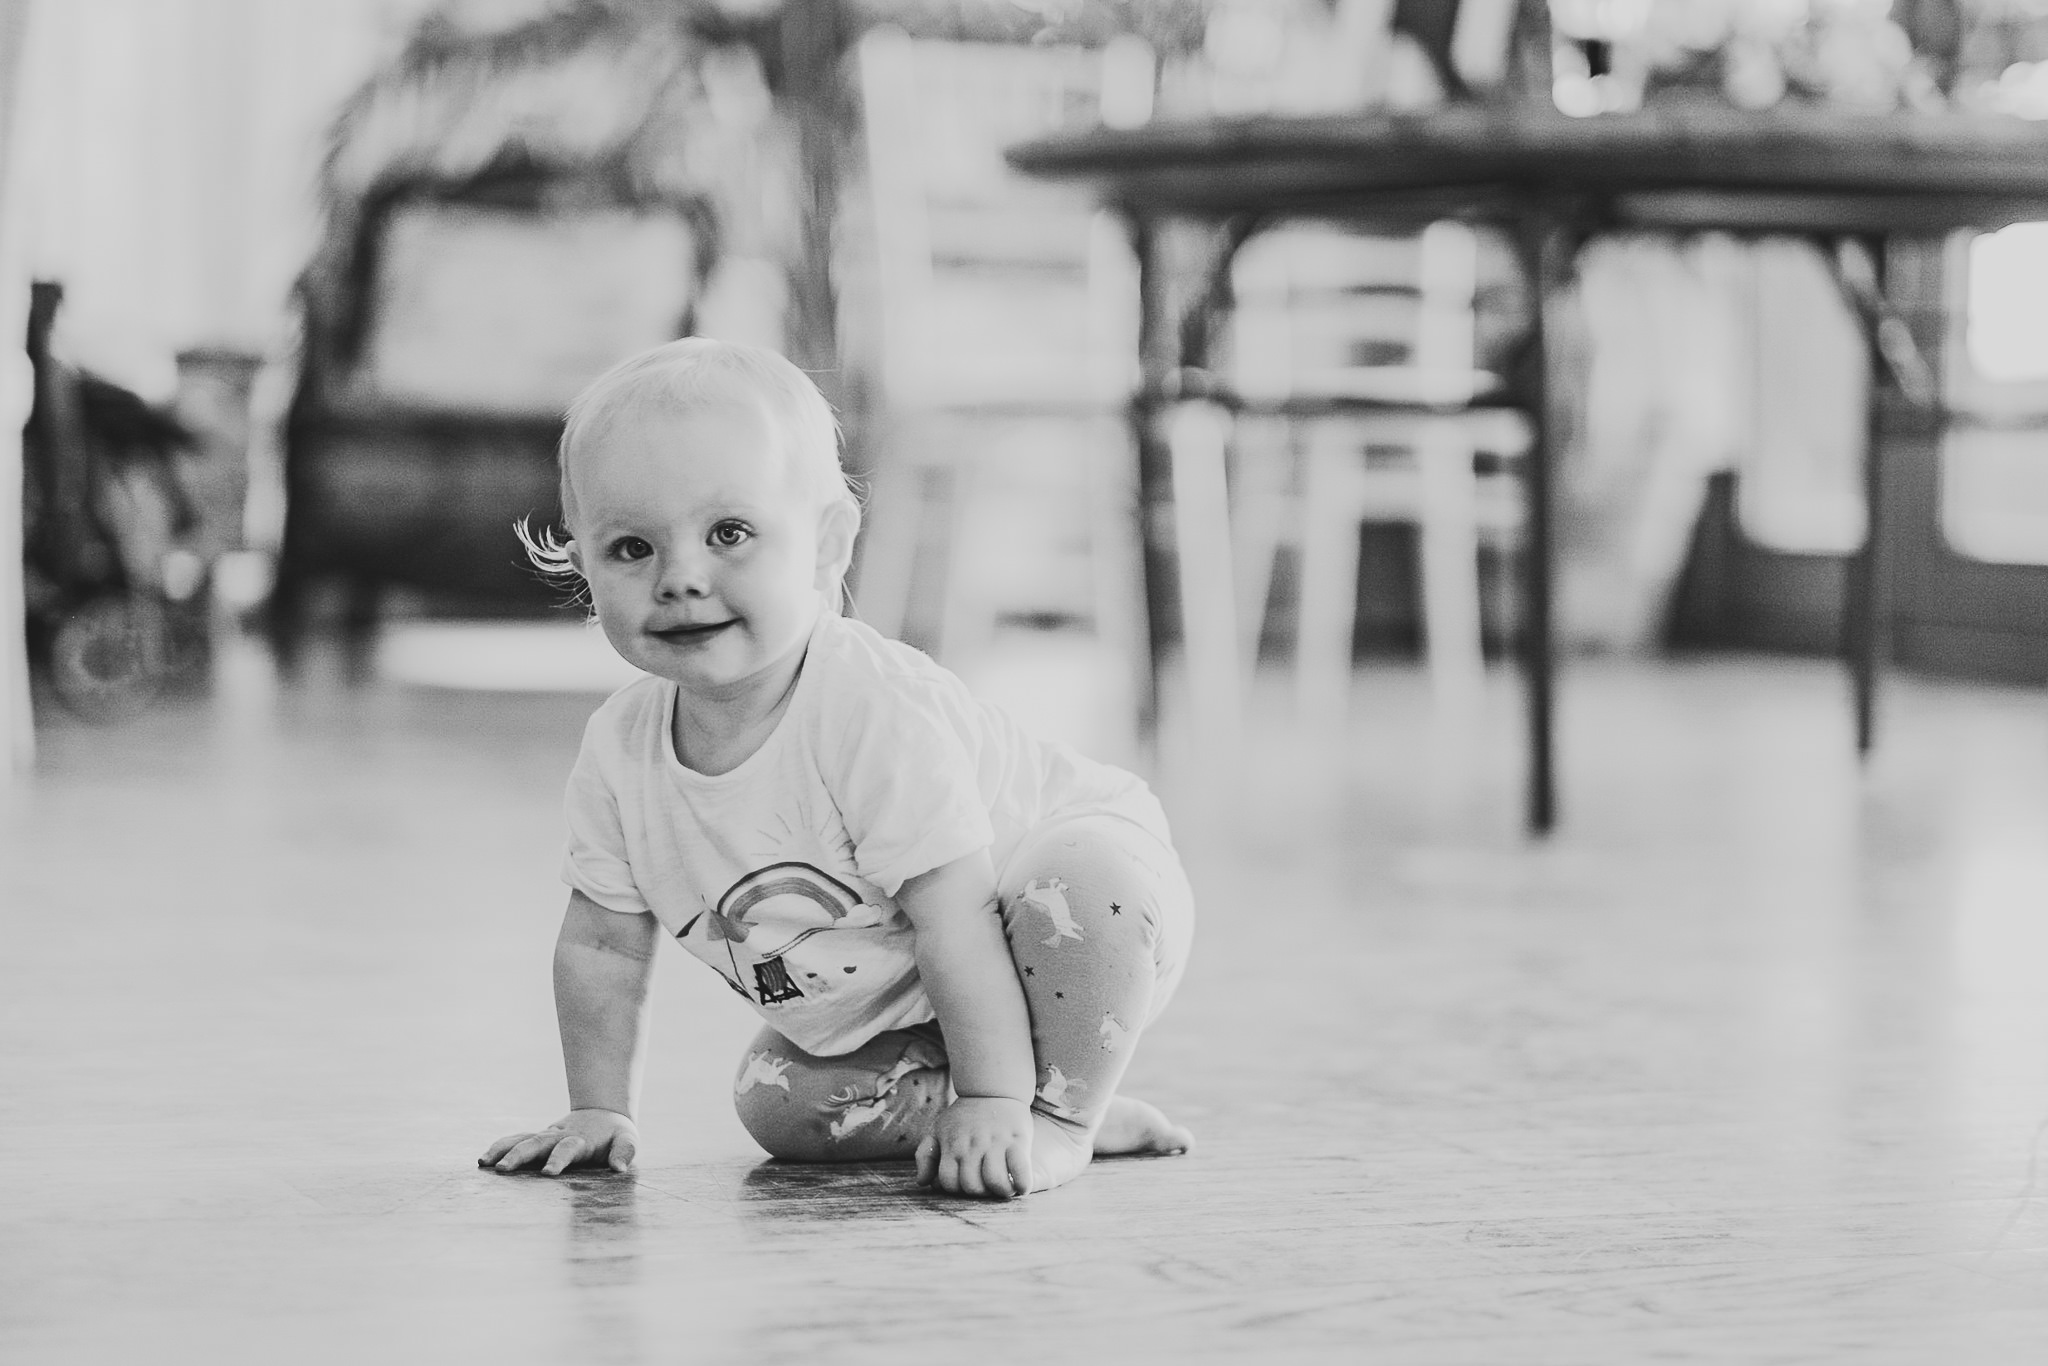 A black and photo of a baby crawling on the dance floor